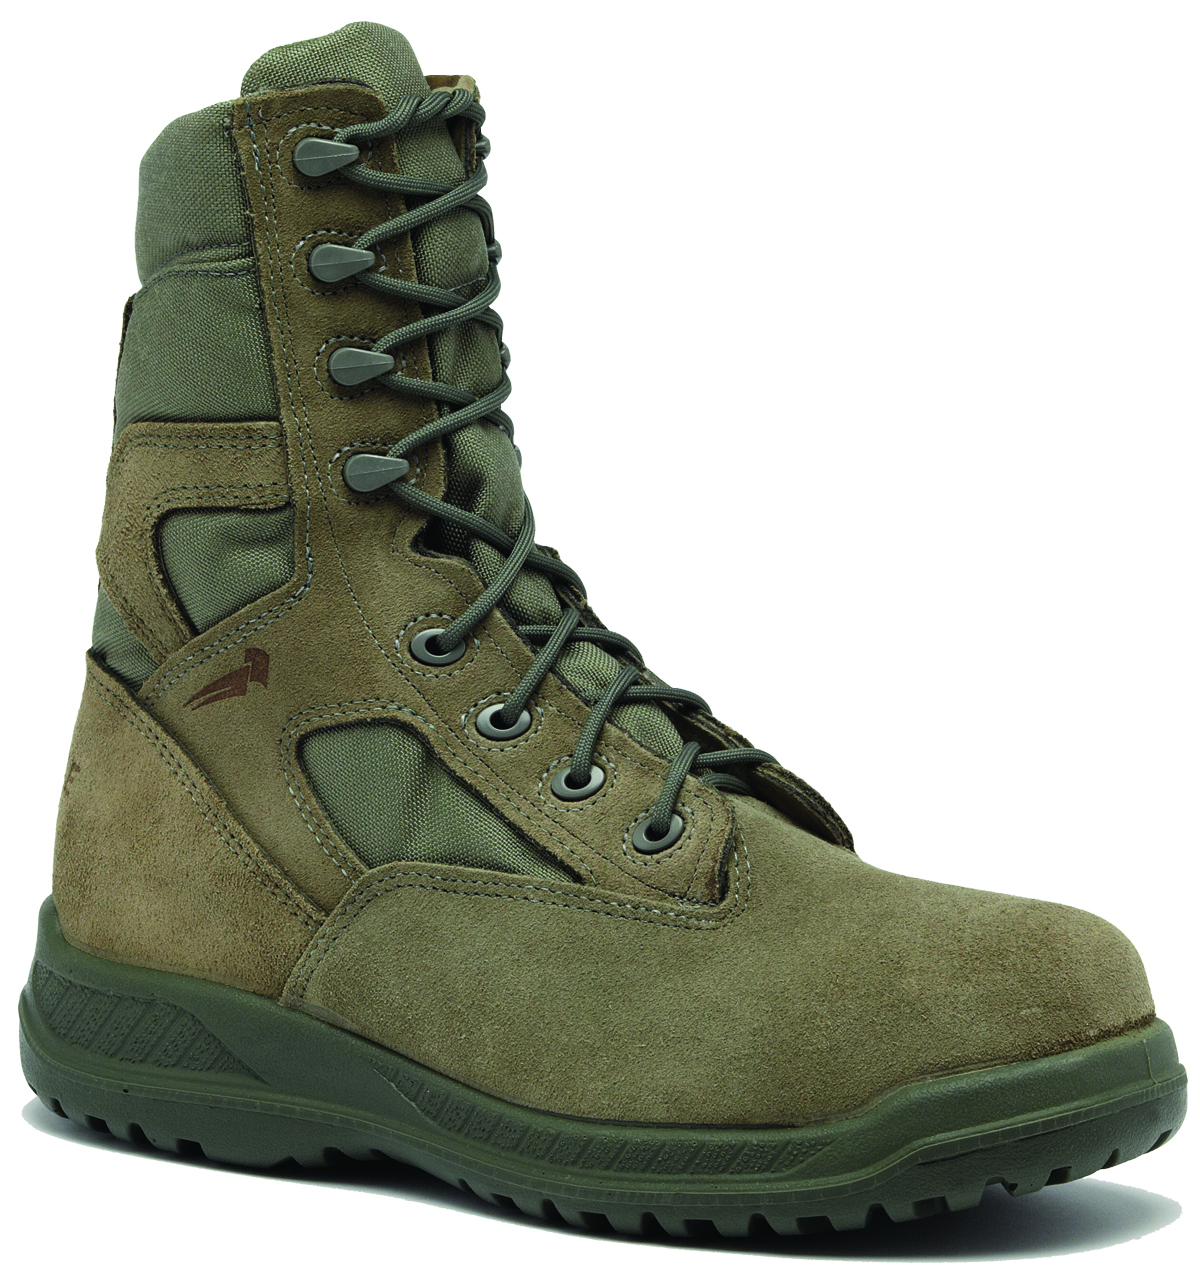 Belleville 610 ST USAF Combat Boots - Free Exchanges and Shipping